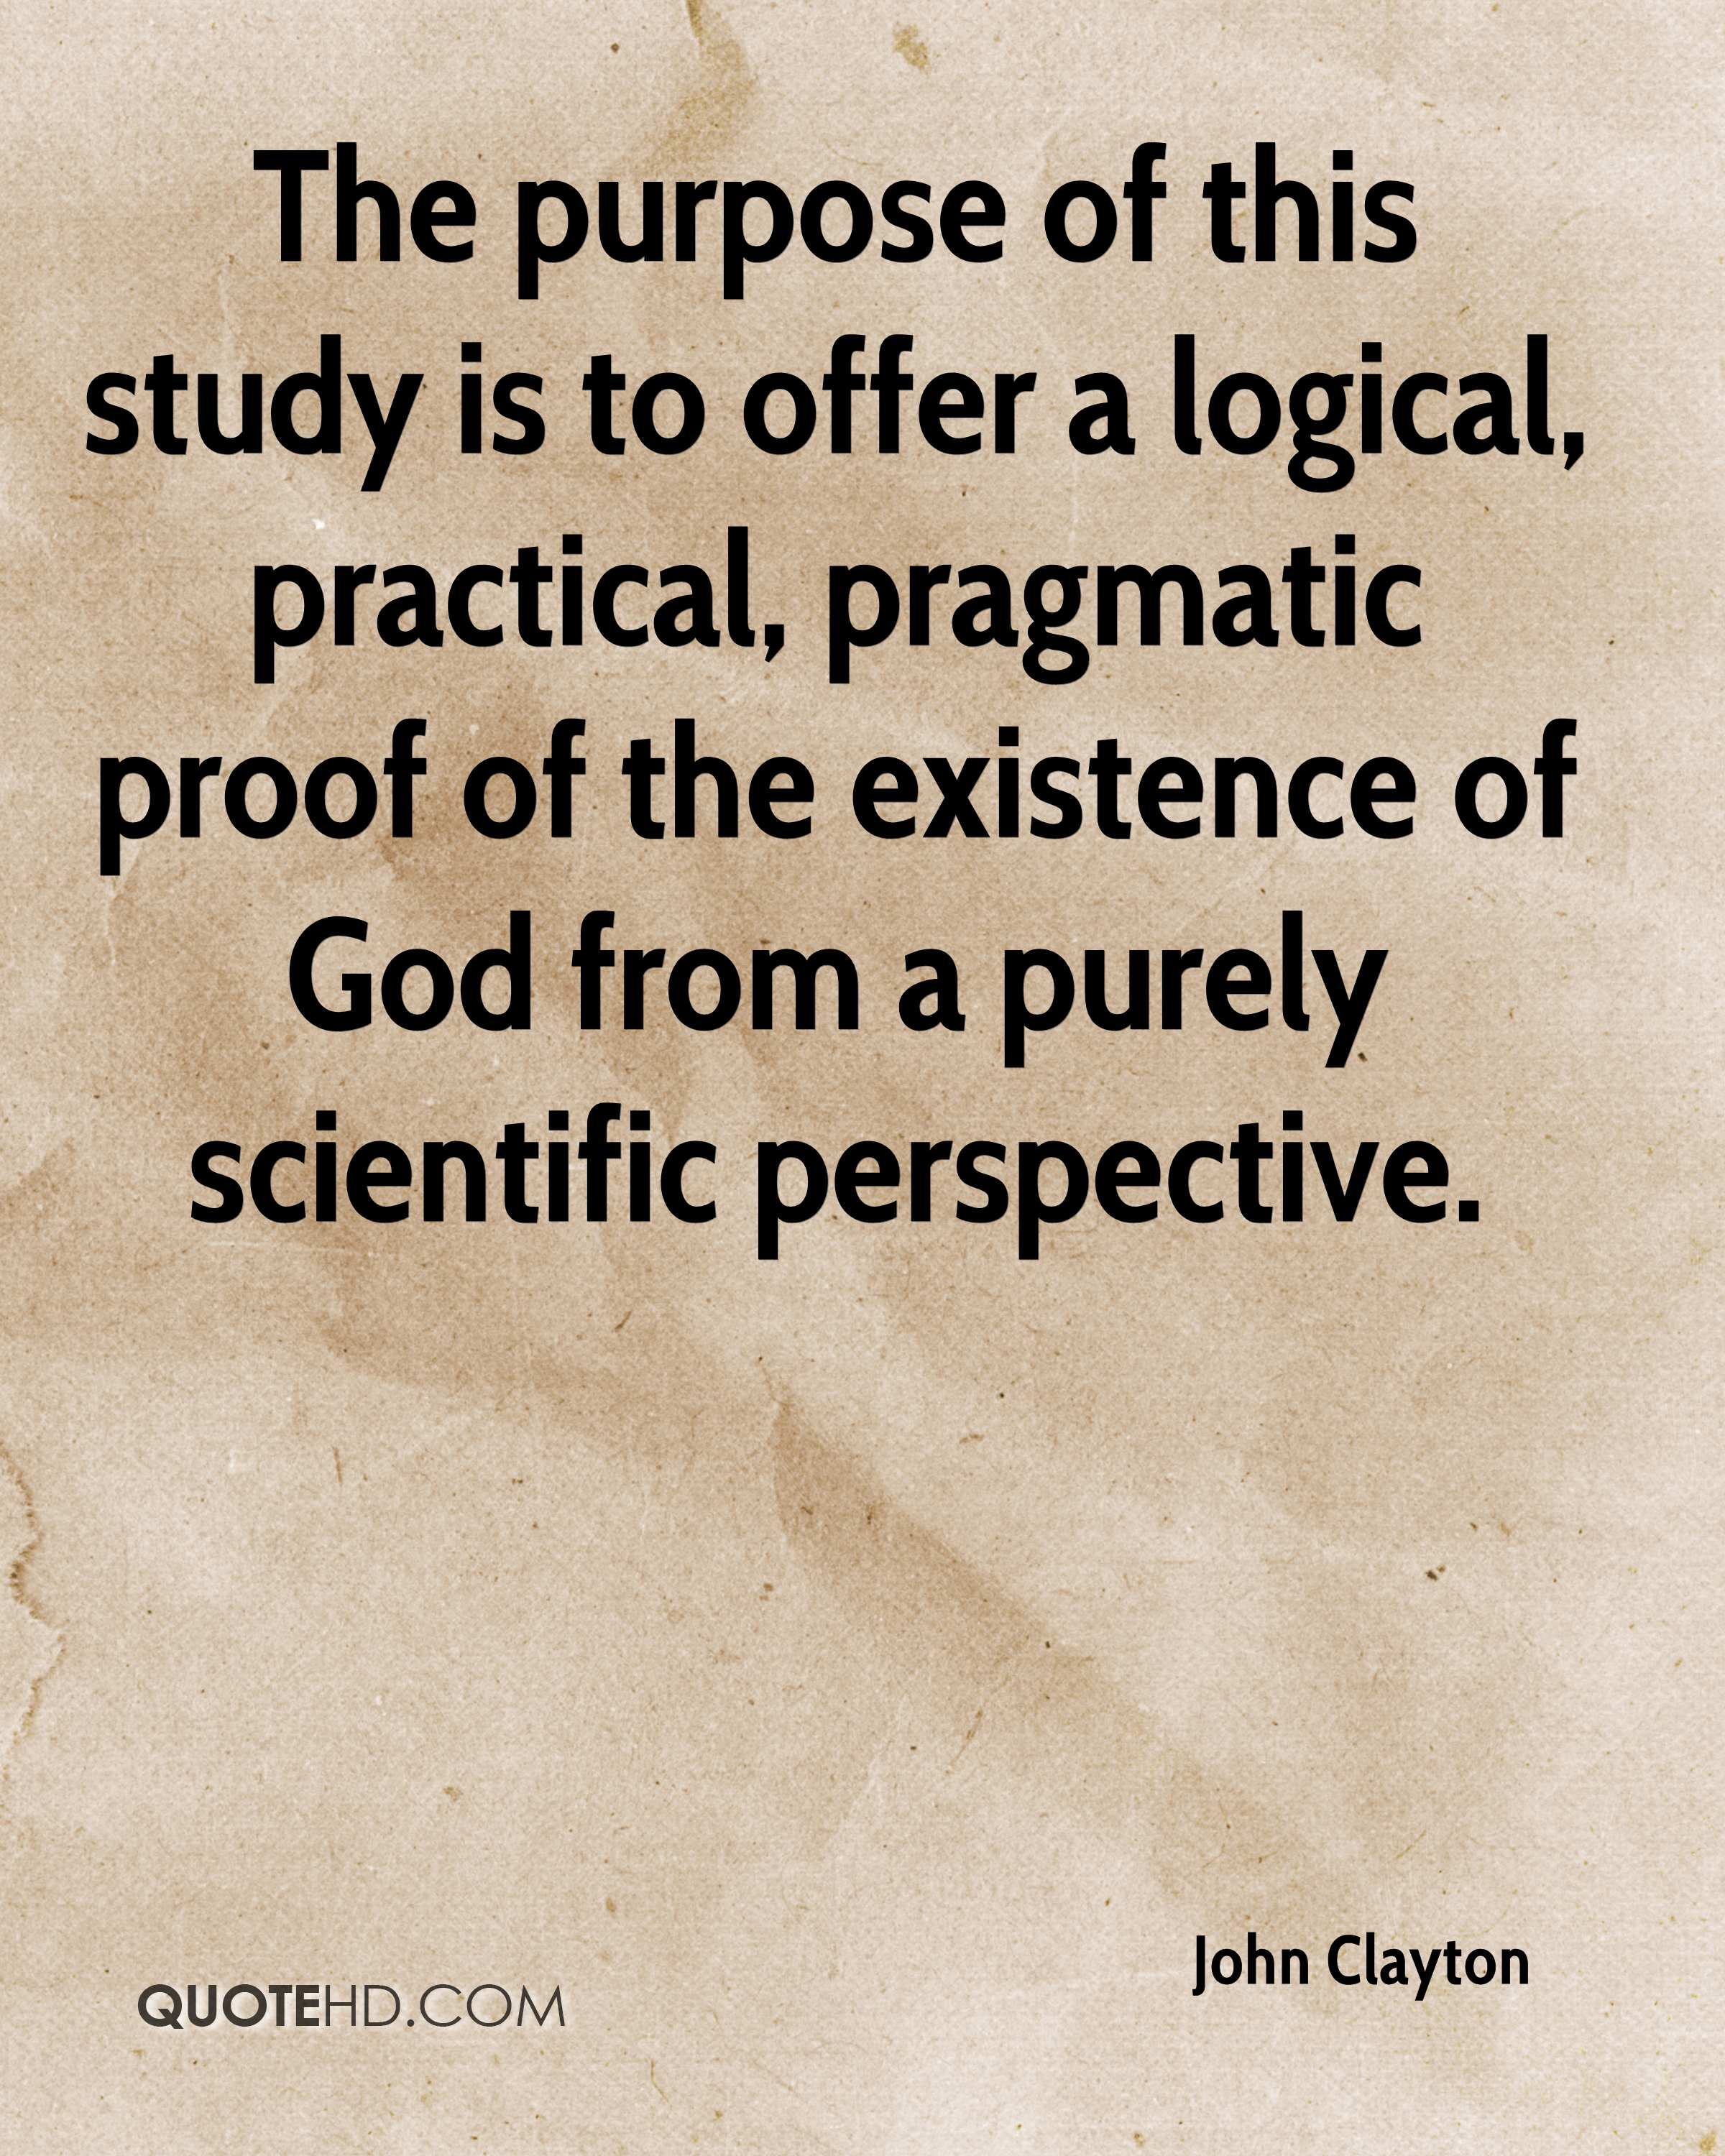 The purpose of this study is to offer a logical, practical, pragmatic proof of the existence of God from a purely scientific perspective.